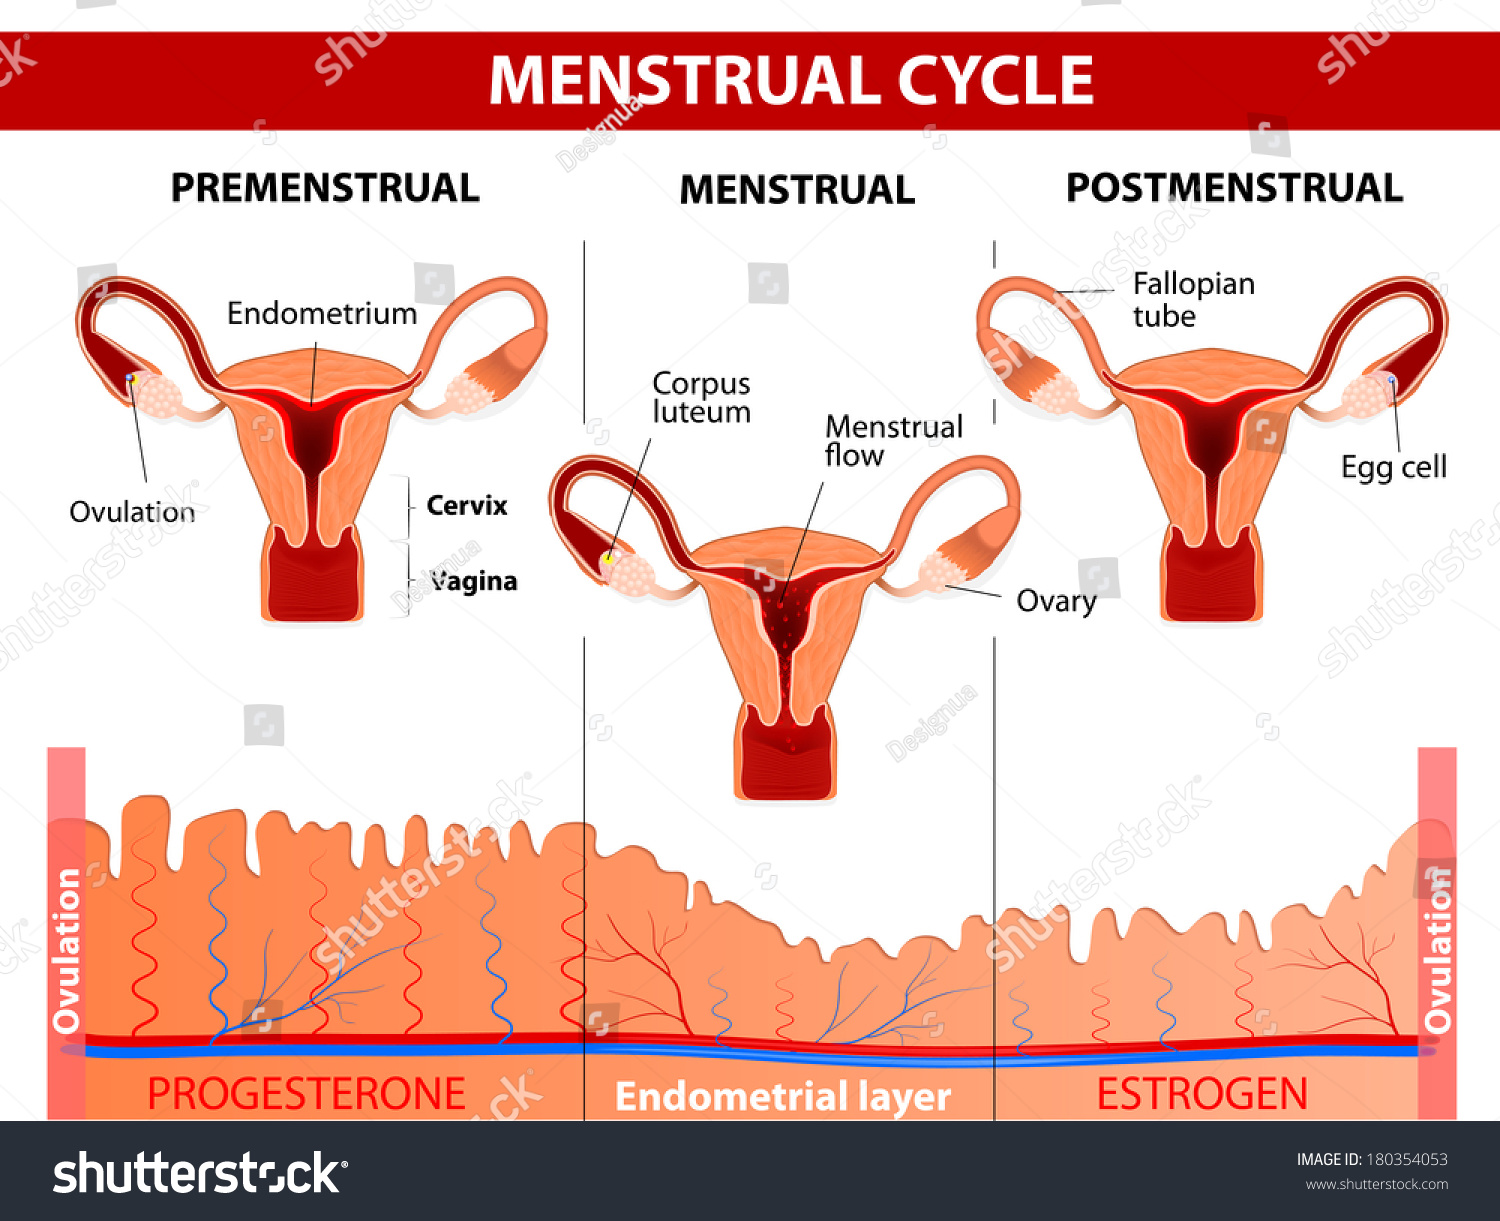 Menstrual Cycle Menstruation Follicle Phase Ovulation